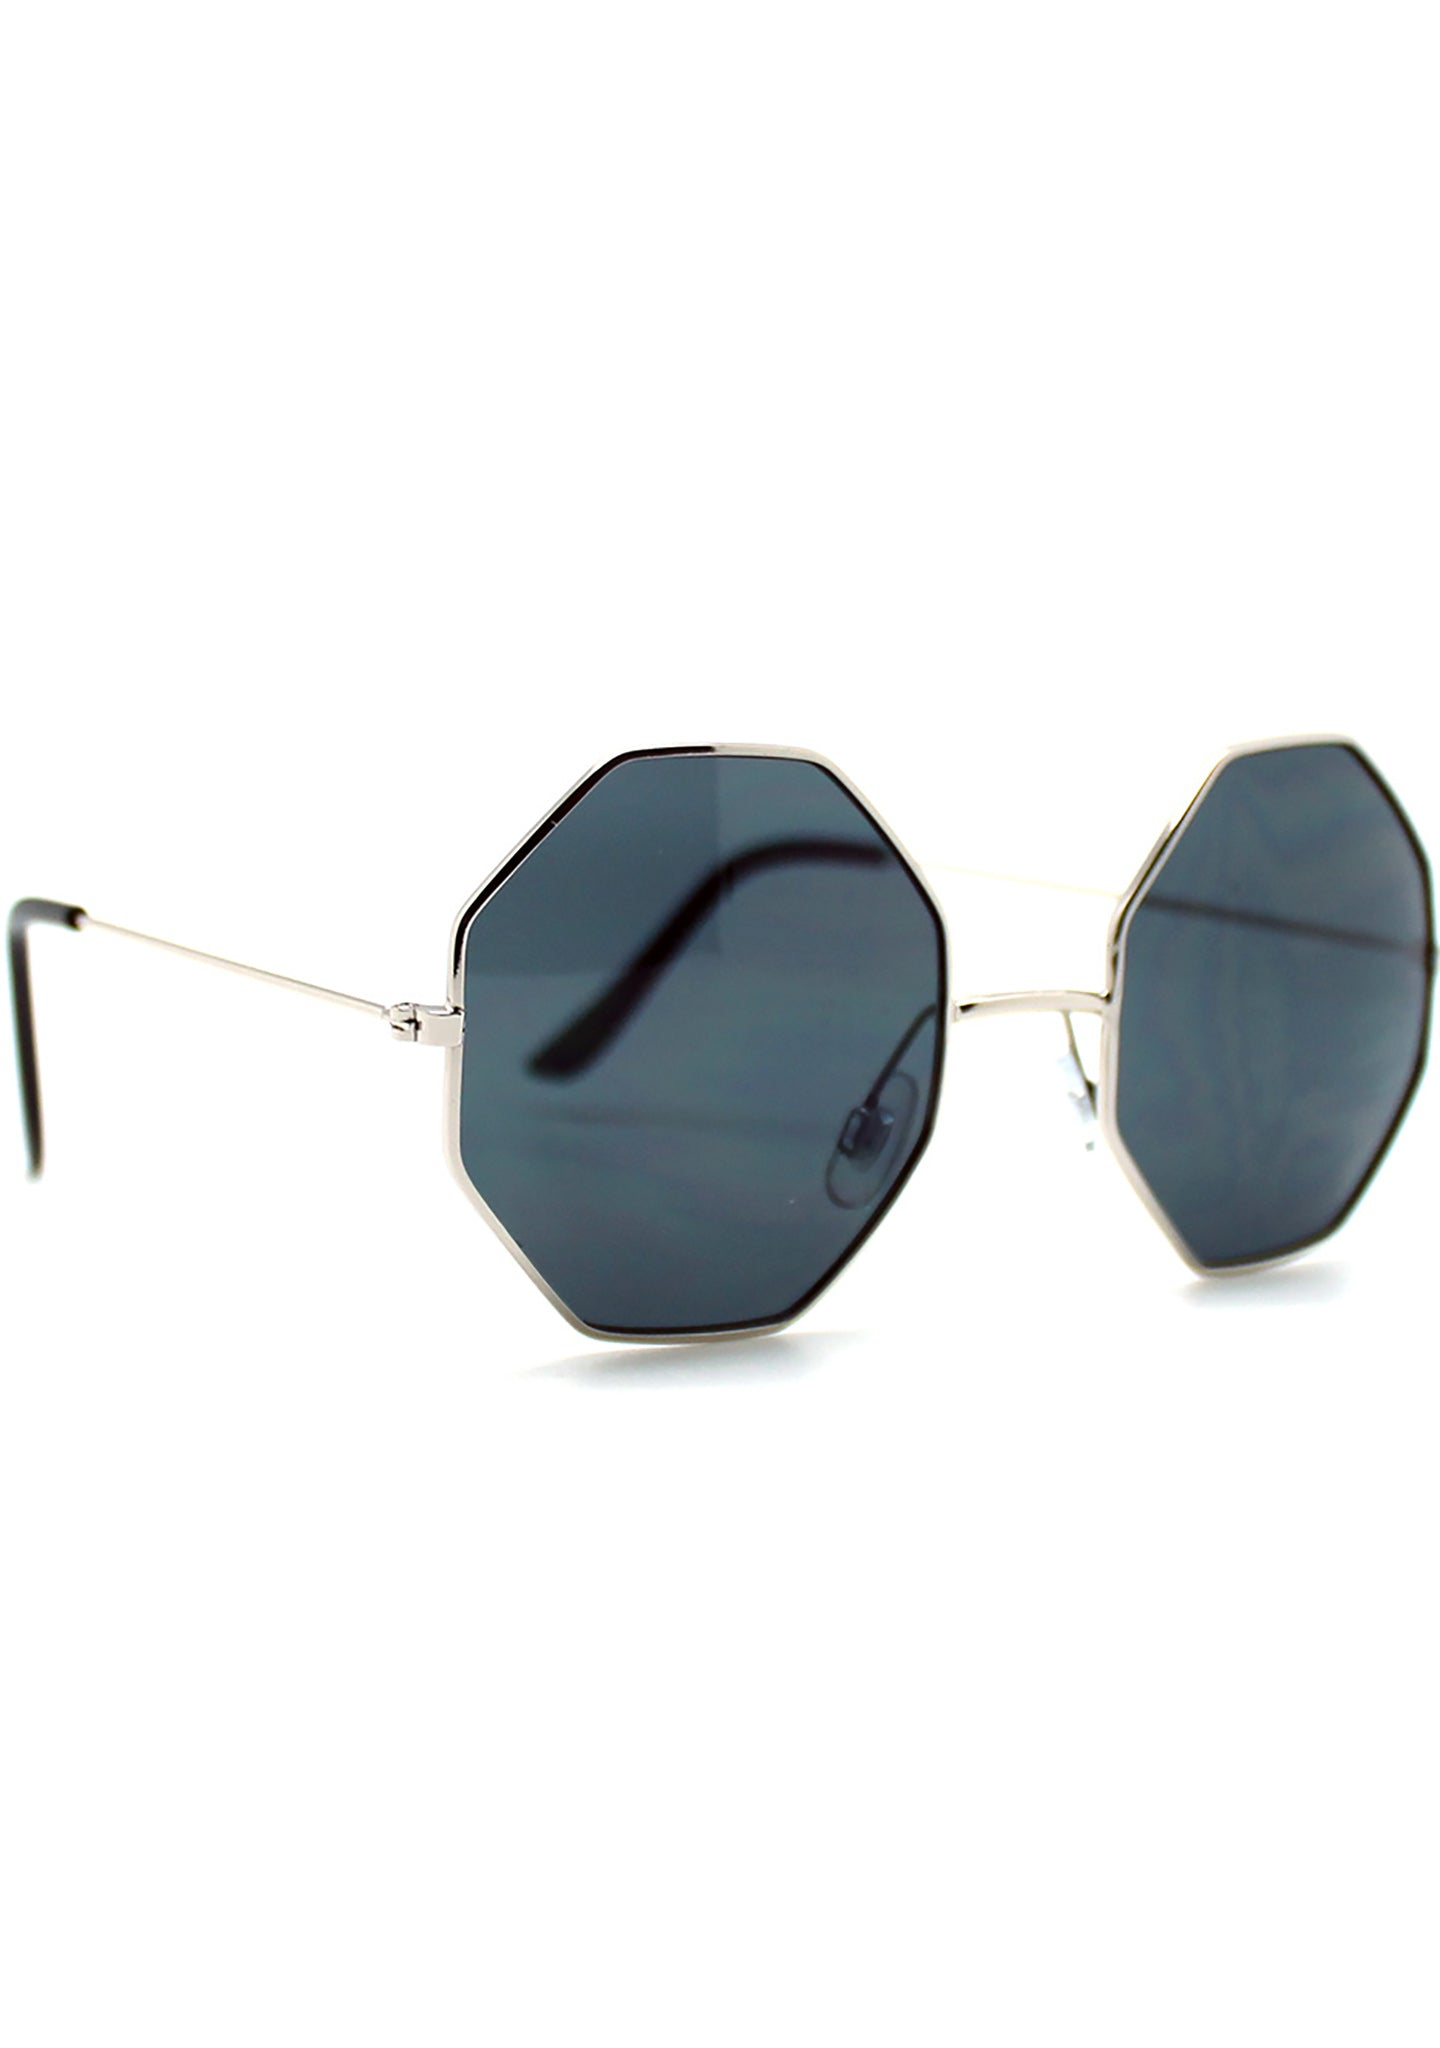 7 LUXE Oxi 8 Sunglasses